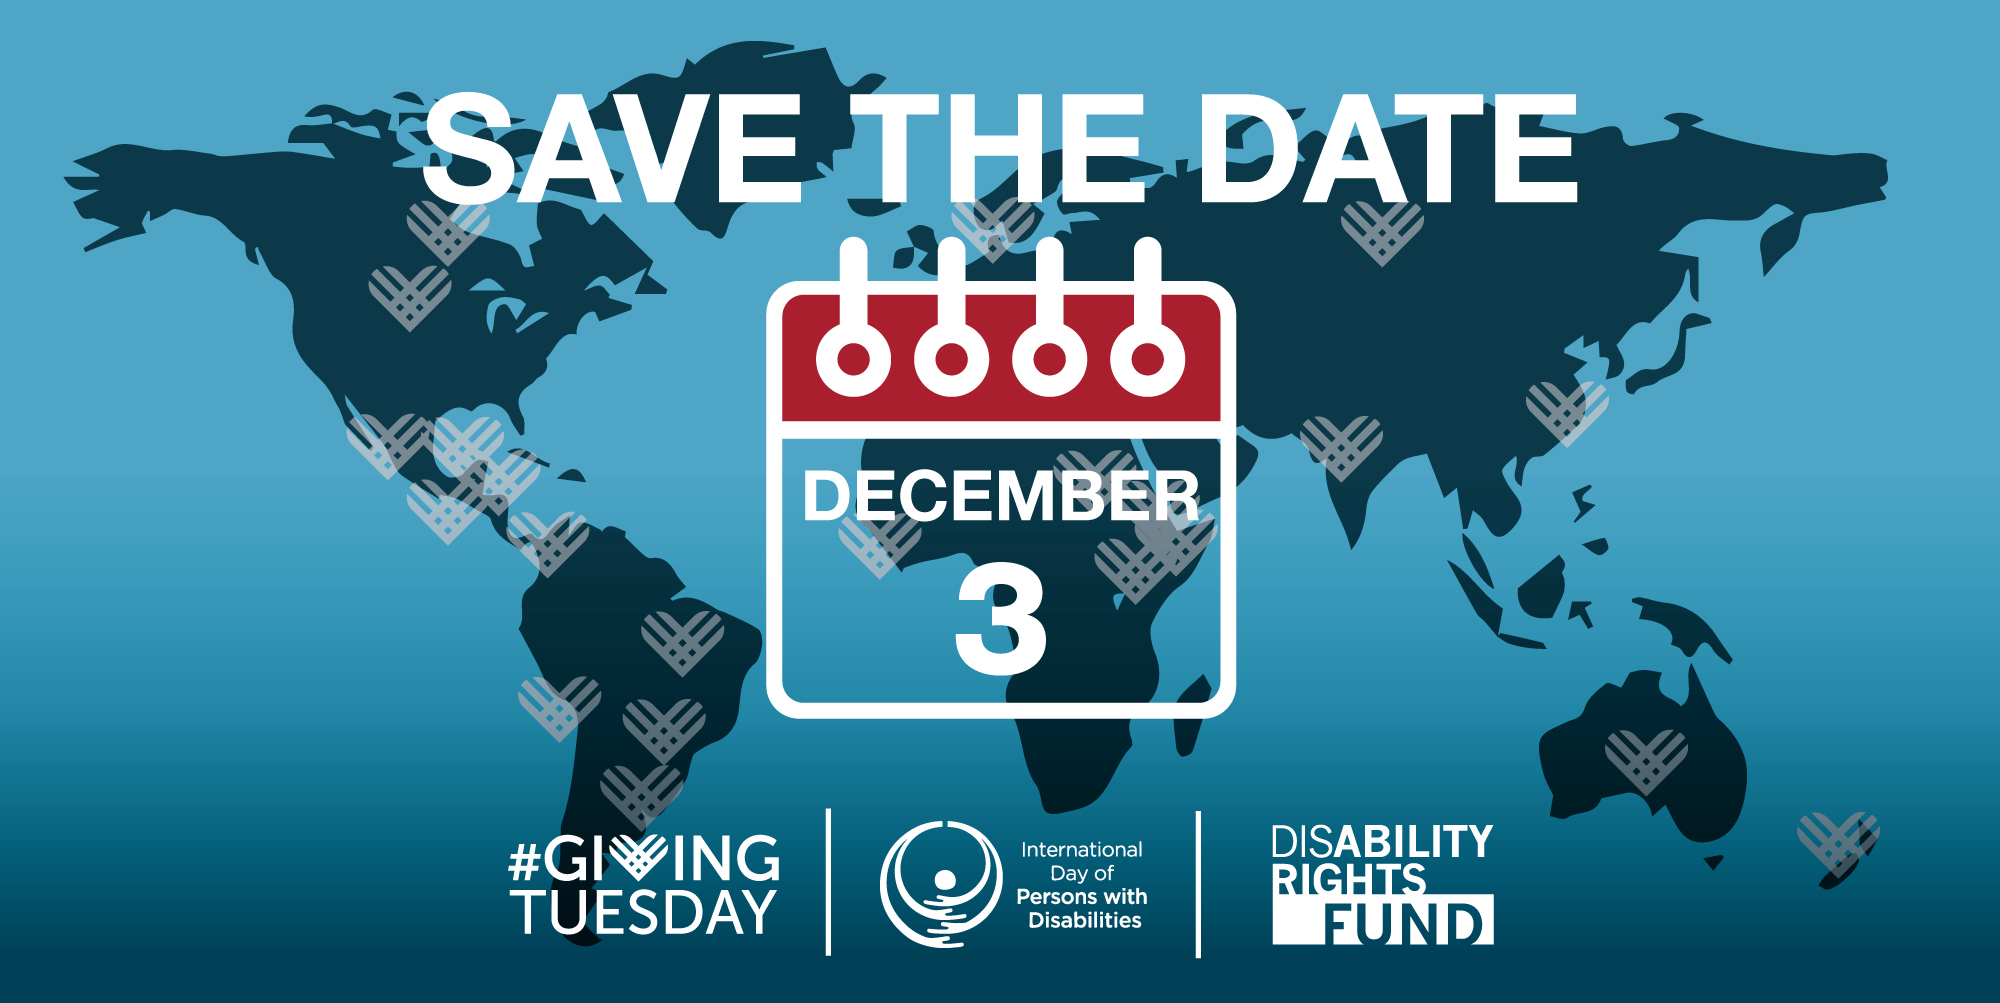 Save the Date for December 3rd Giving Tuesday and International Day of Persons with Disabilities Event